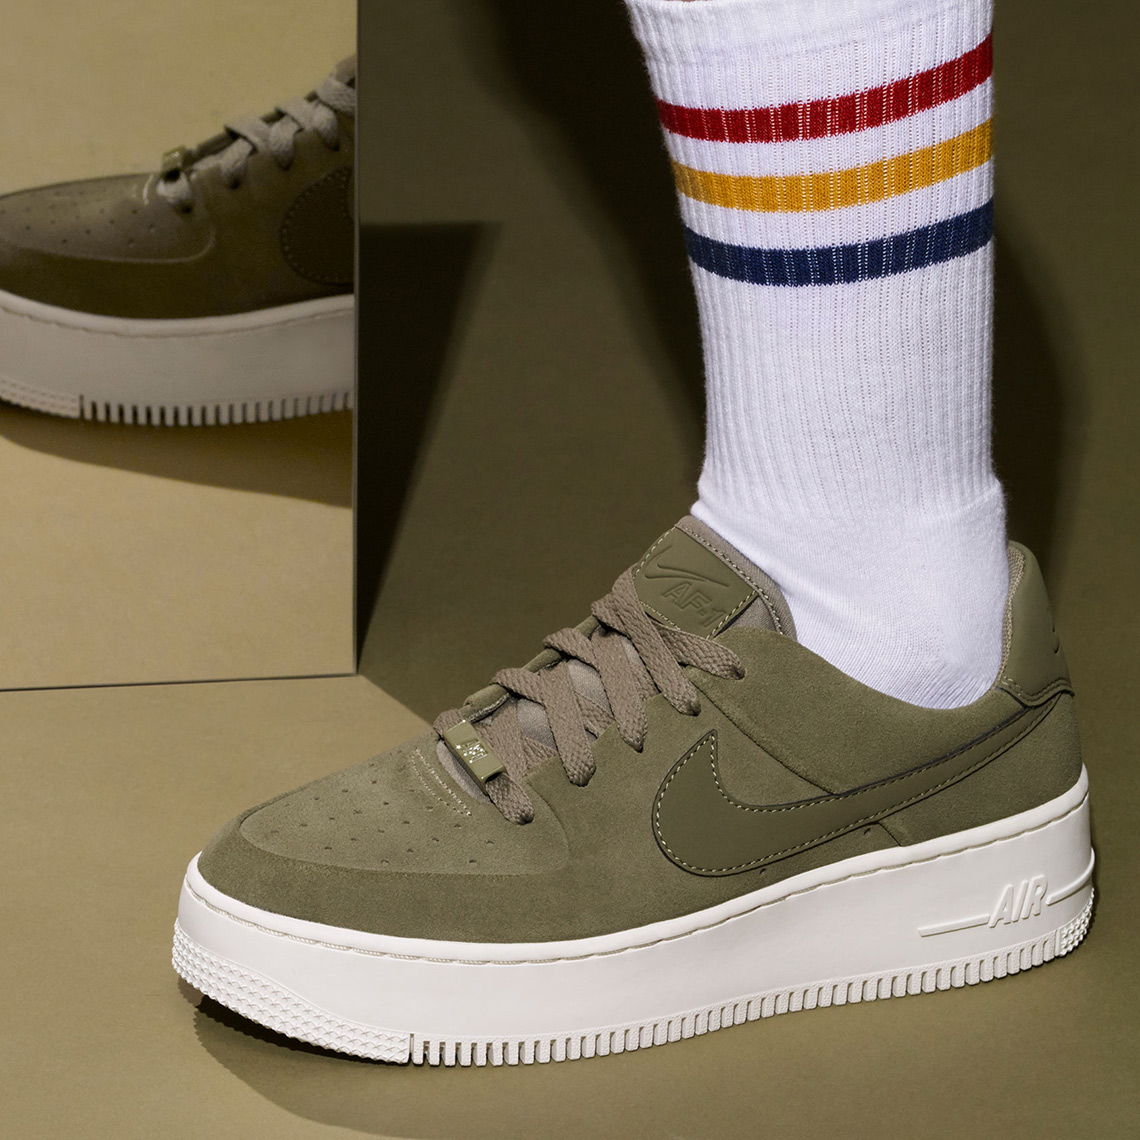 nike air force 1 holiday 2018 5 - Nike Air Force 1 Holiday 2018 Release Info